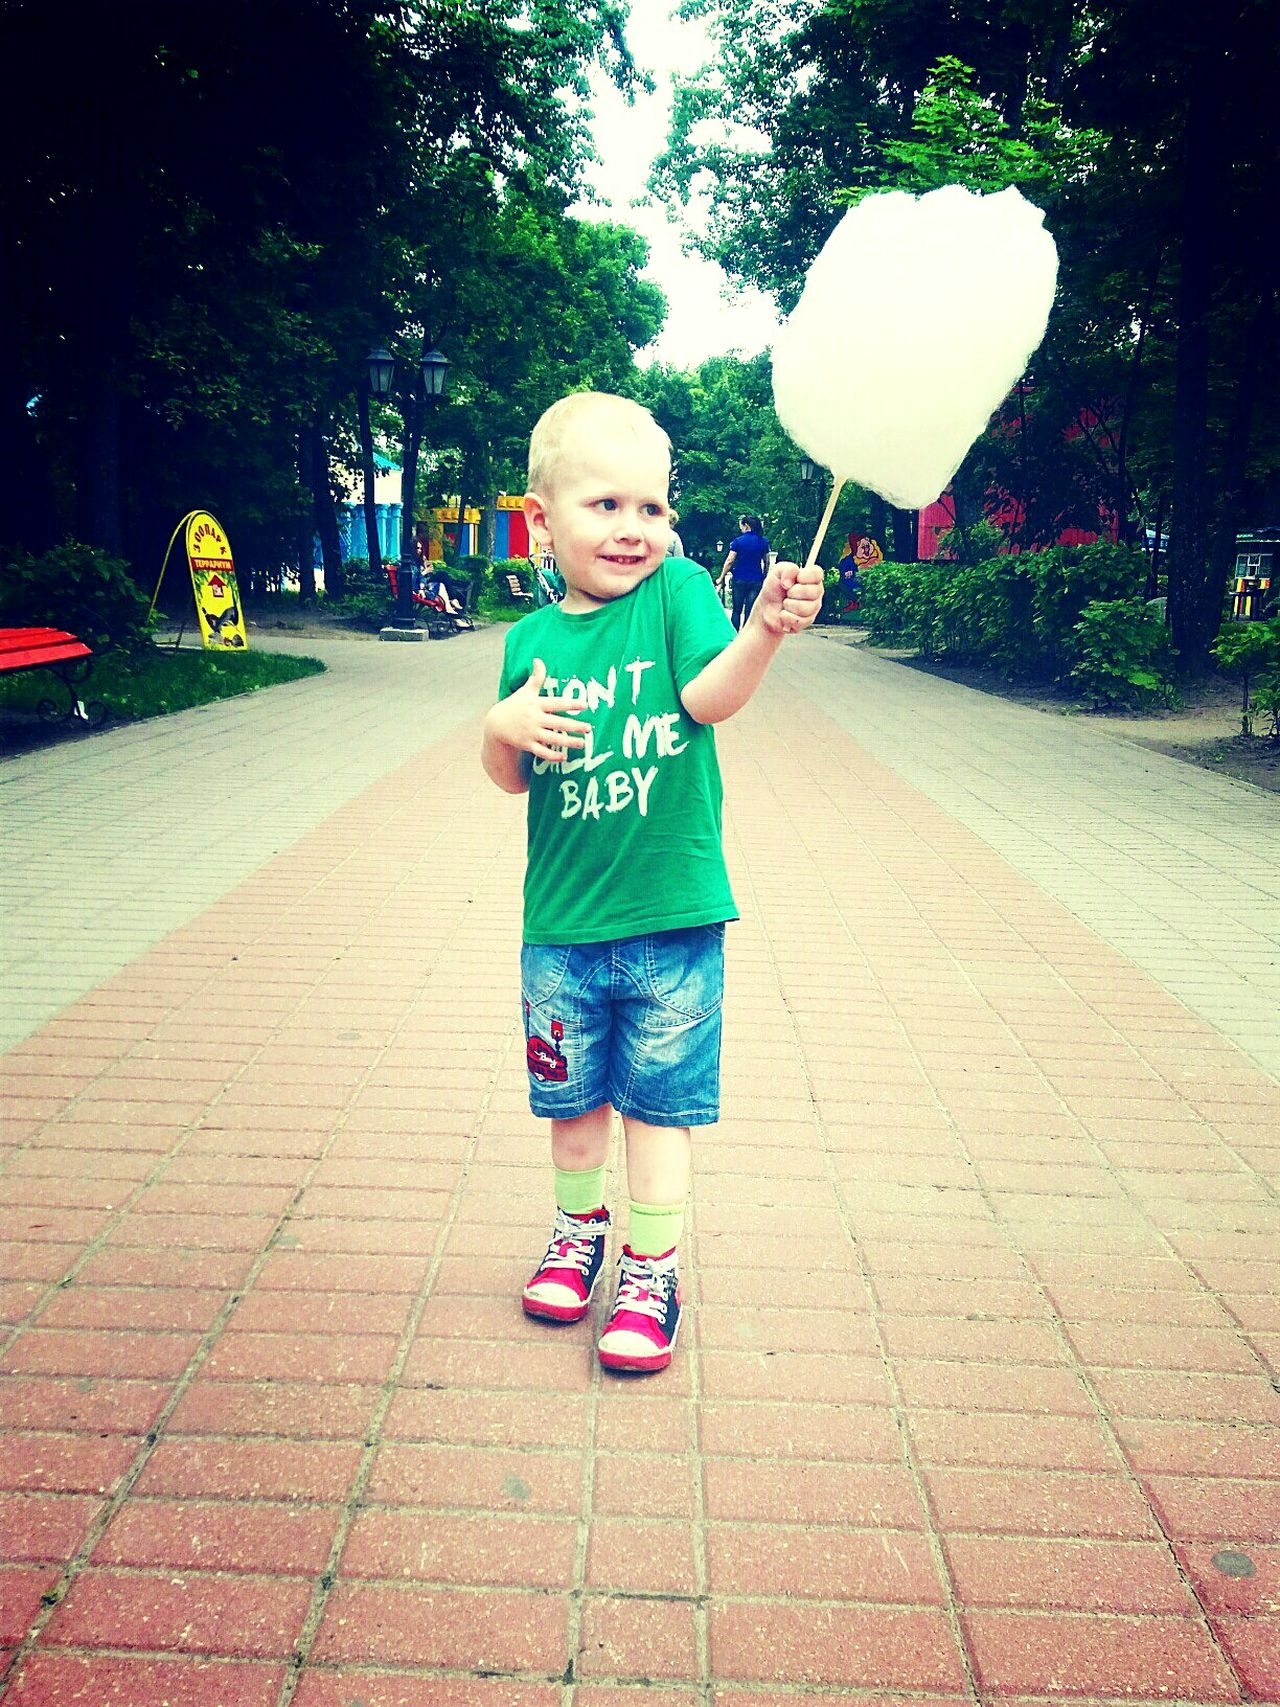 Full Length Baby Childhood One Person Babies Only People Happiness Smiling Babyhood Cheerful Outdoors Day EyeEmNewHere